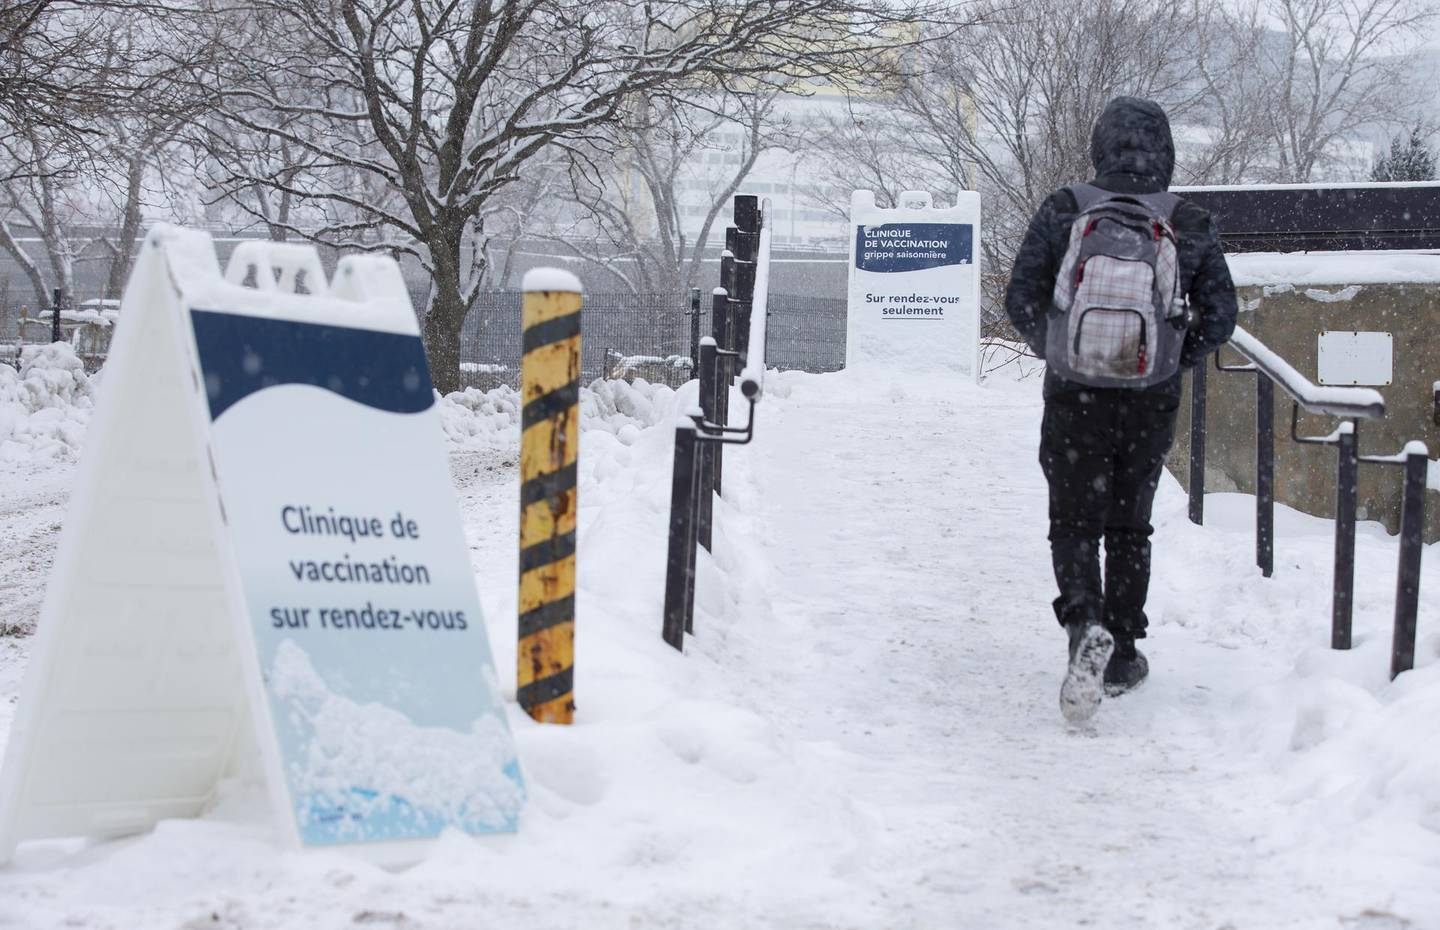 """A pedestrian walks past signs for a COVID-19 vaccination clinic in Montreal, Quebec, Canada, on Thursday, Jan. 21, 2021. Even though Canada has secured more vaccines per capita than any other nation, """"it doesn't mean much"""" when the bulk is not yet being delivered,an epidemiologist at the University of Toronto said. Photographer: Christinne Muschi/Bloomberg"""